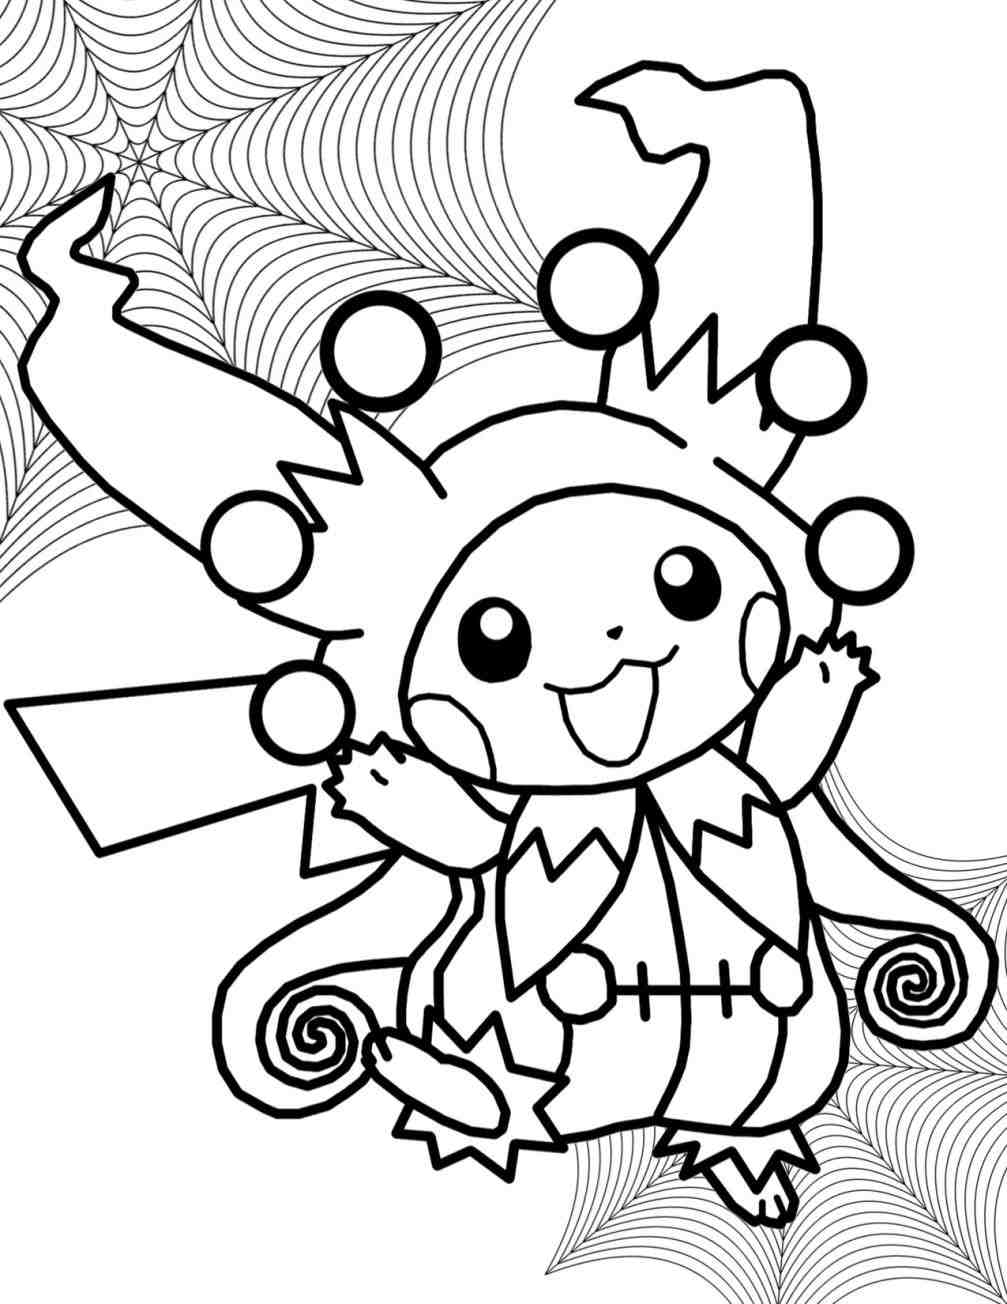 1007x1304 Pokemon Coloring Pages Caterpie Web Coloring Pages